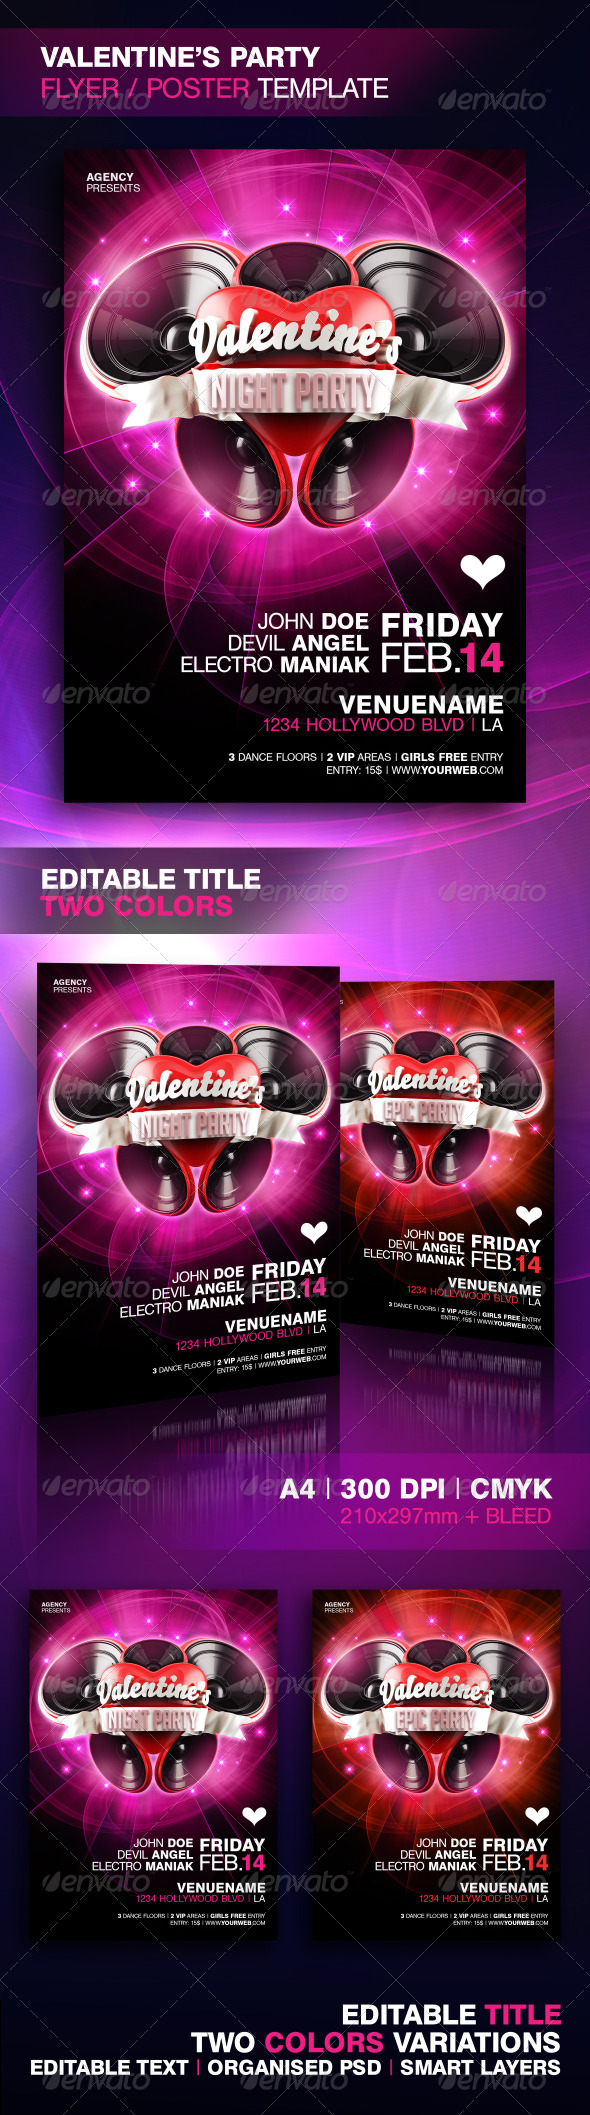 GraphicRiver Valentine's Party Poster and Flyer Template 6770502